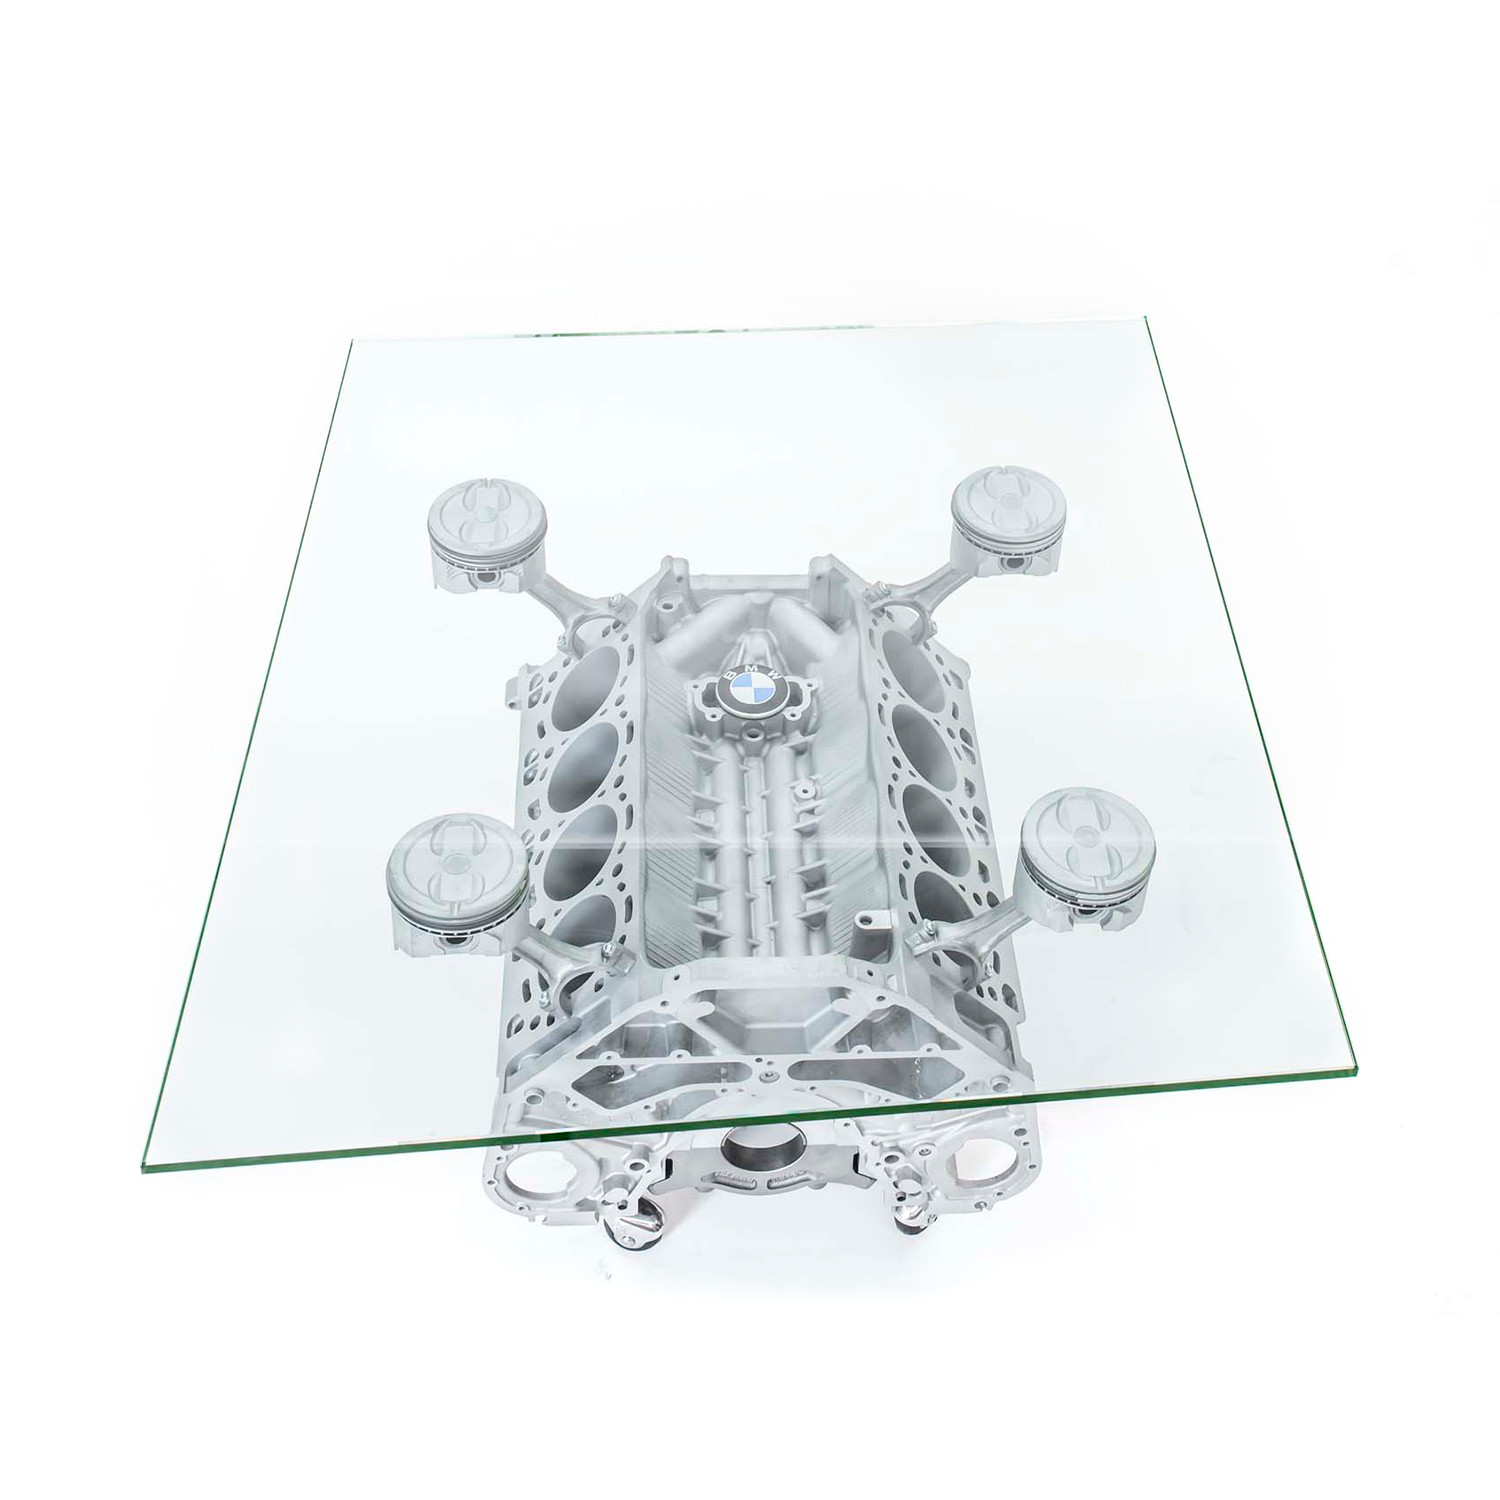 Photo V8 Engine Coffee Table For Sale Images Motor